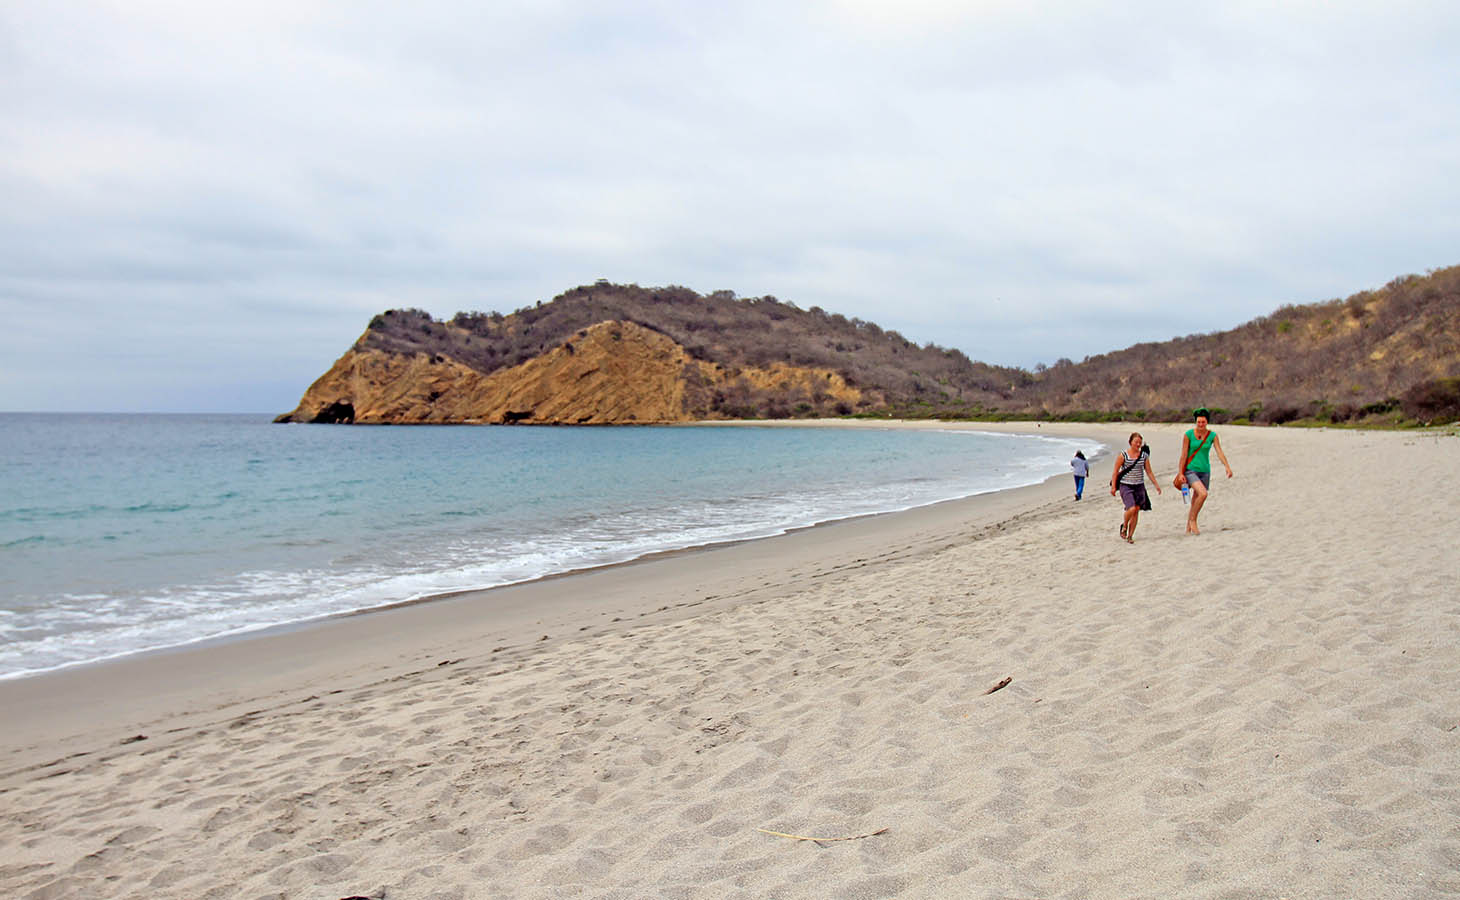 Los Frailes Beach Park - Los Frailes is a surrounded beach park comprising of three individual beaches and a nature trail. The largest of the three individual beaches is Los Frailes. This is the region to come to if you intend to relax and explore.The trailhead you will find immediately to your right when you enter the main gate will take you through a colorful trail that'll run through all lookout points and beaches. The facility situated next to Los Frailes Beach Park features fresh water showers, bathrooms, and changing rooms.